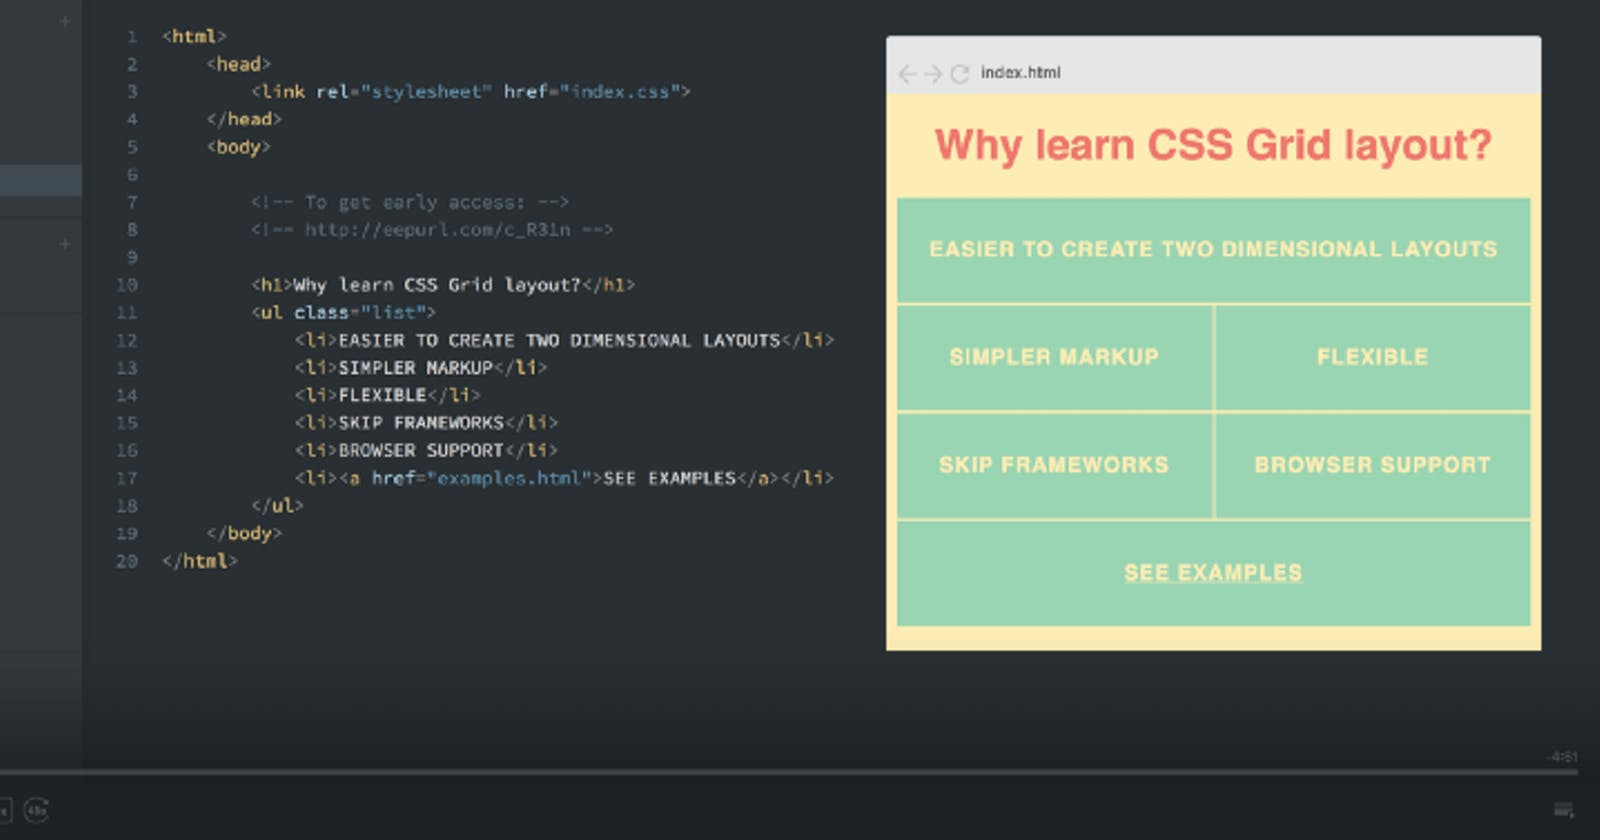 Want to learn CSS Grid? Here's my free full-length course!